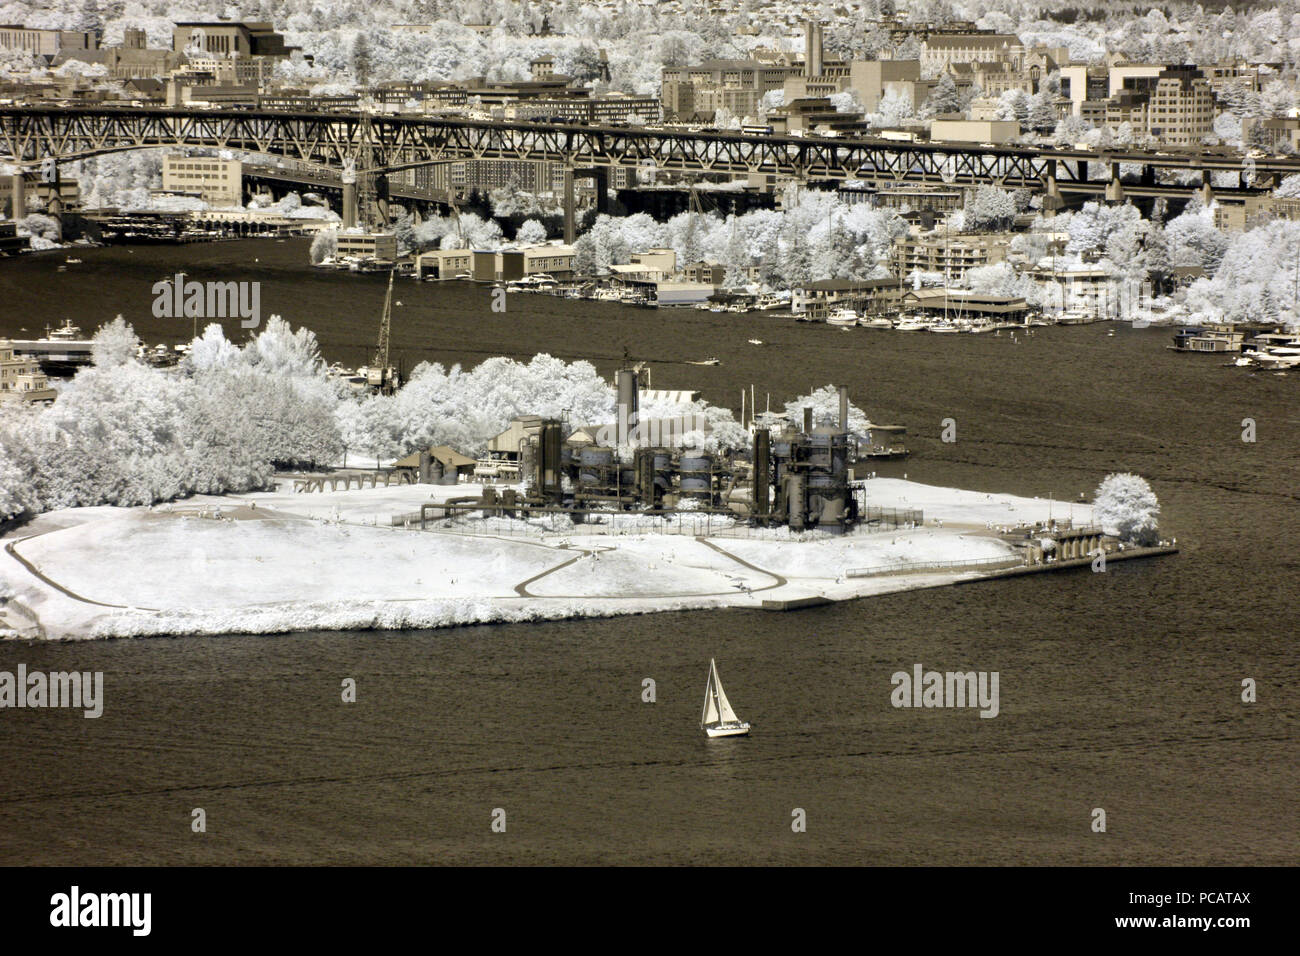 View of Lake Union and Gas Works park, Seattle. - Stock Image